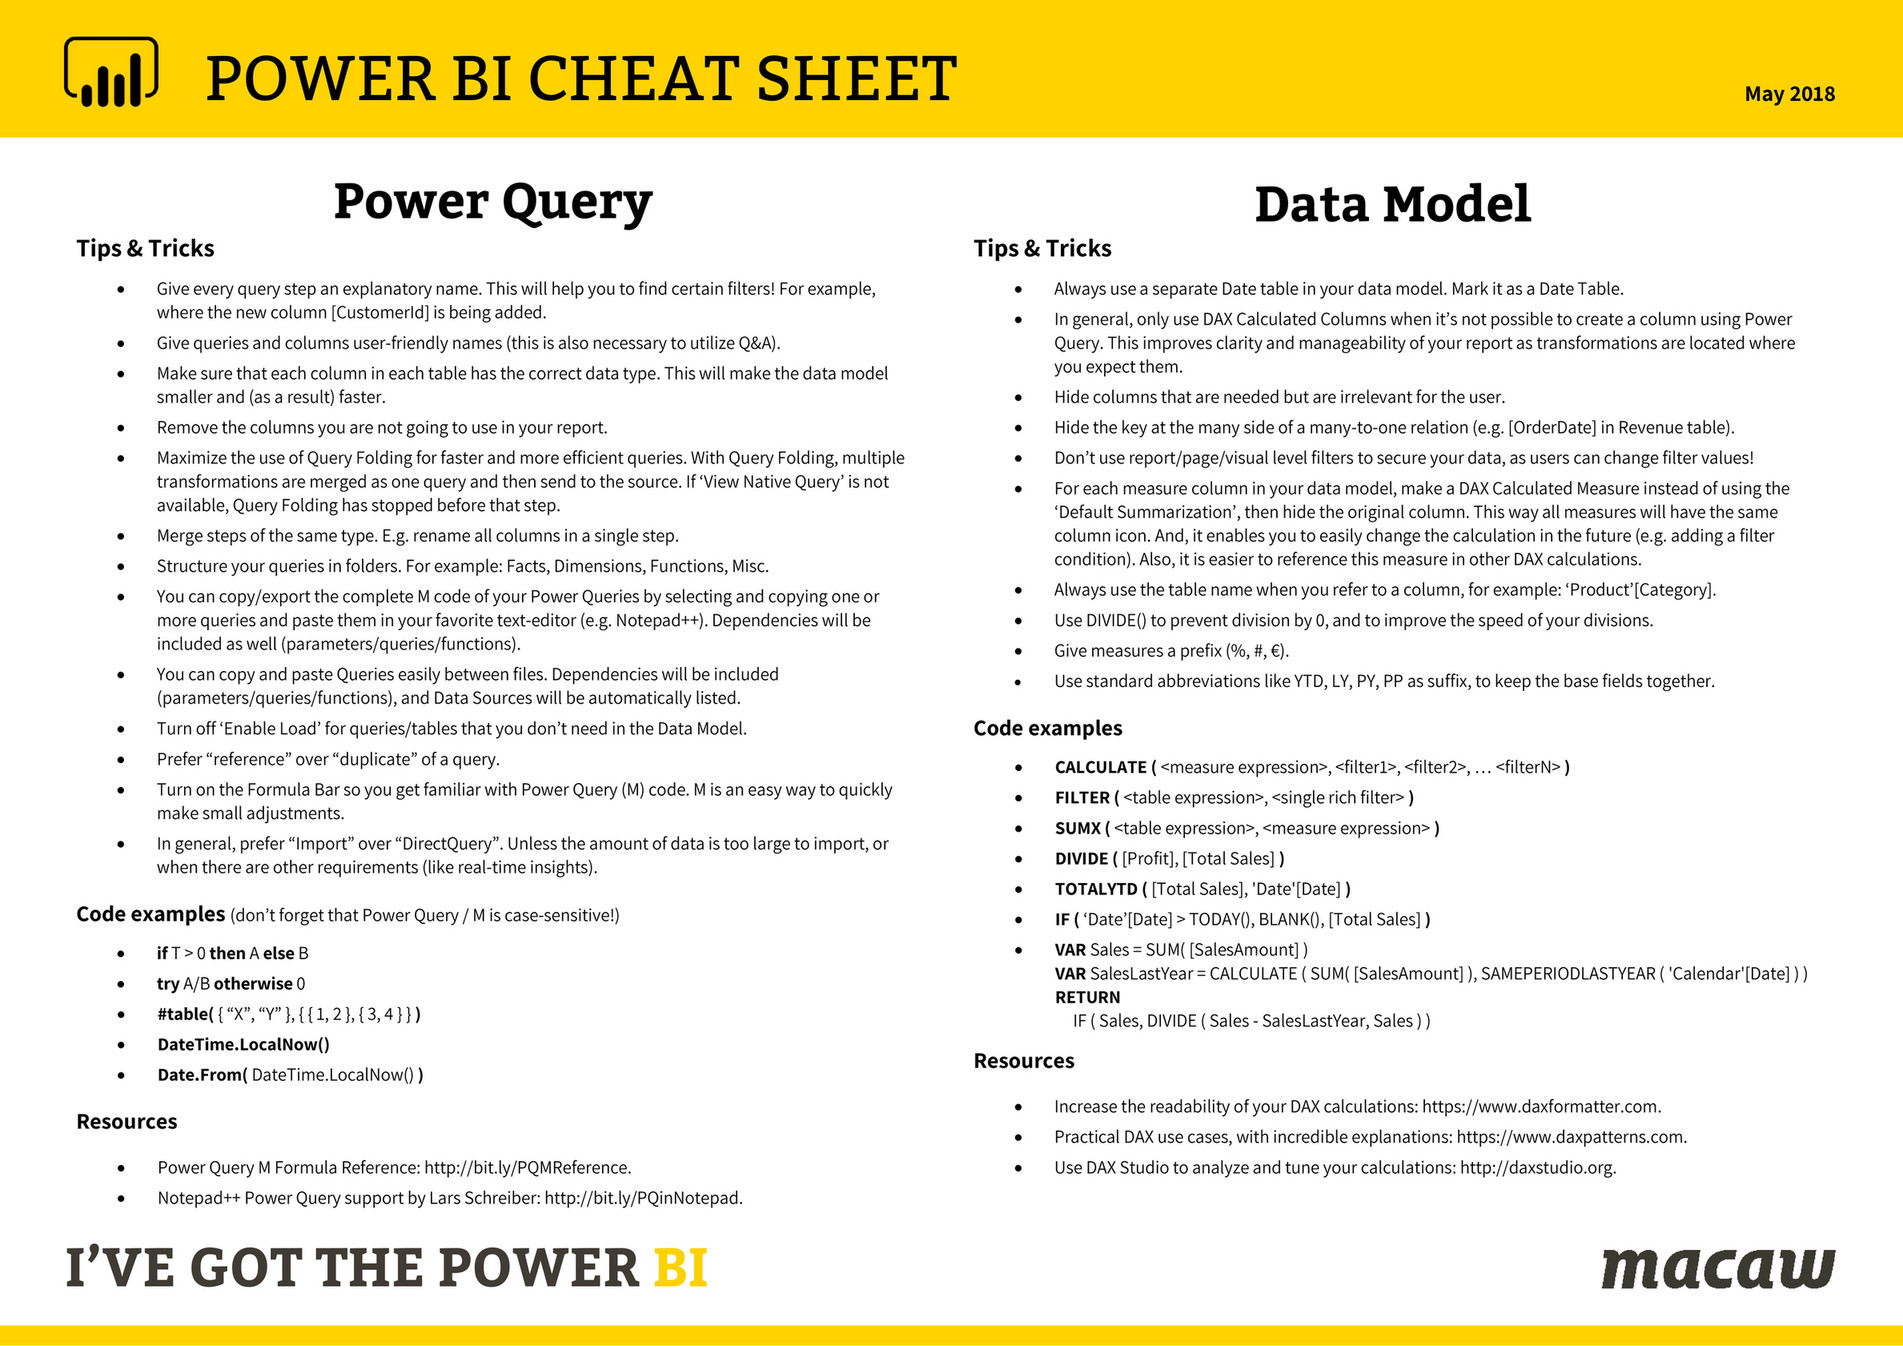 kevinh work - Macaw Power BI Cheat Sheet - Page 1 - Created with